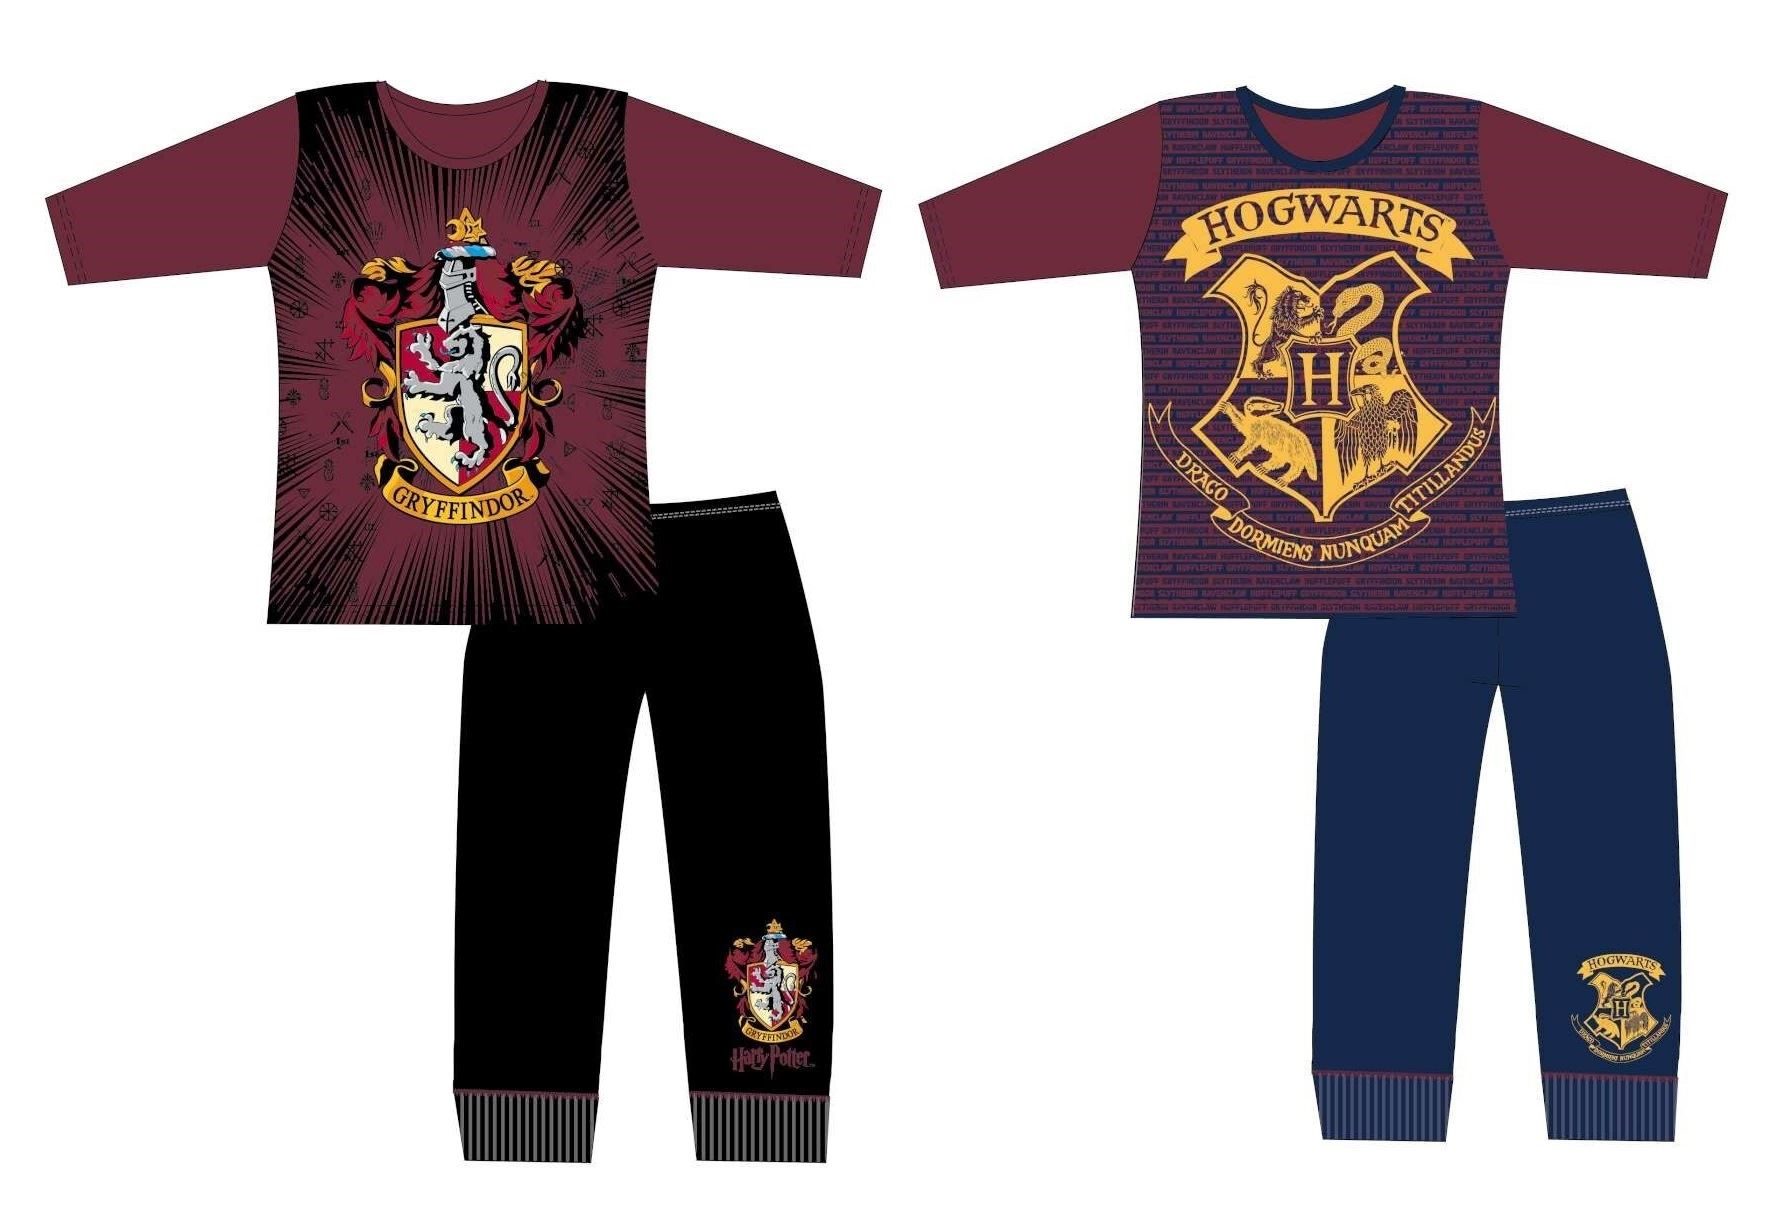 Official Boys Harry Potter Pyjamas Pajamas Pjs Nightwear Kids Children 6 8 10 12